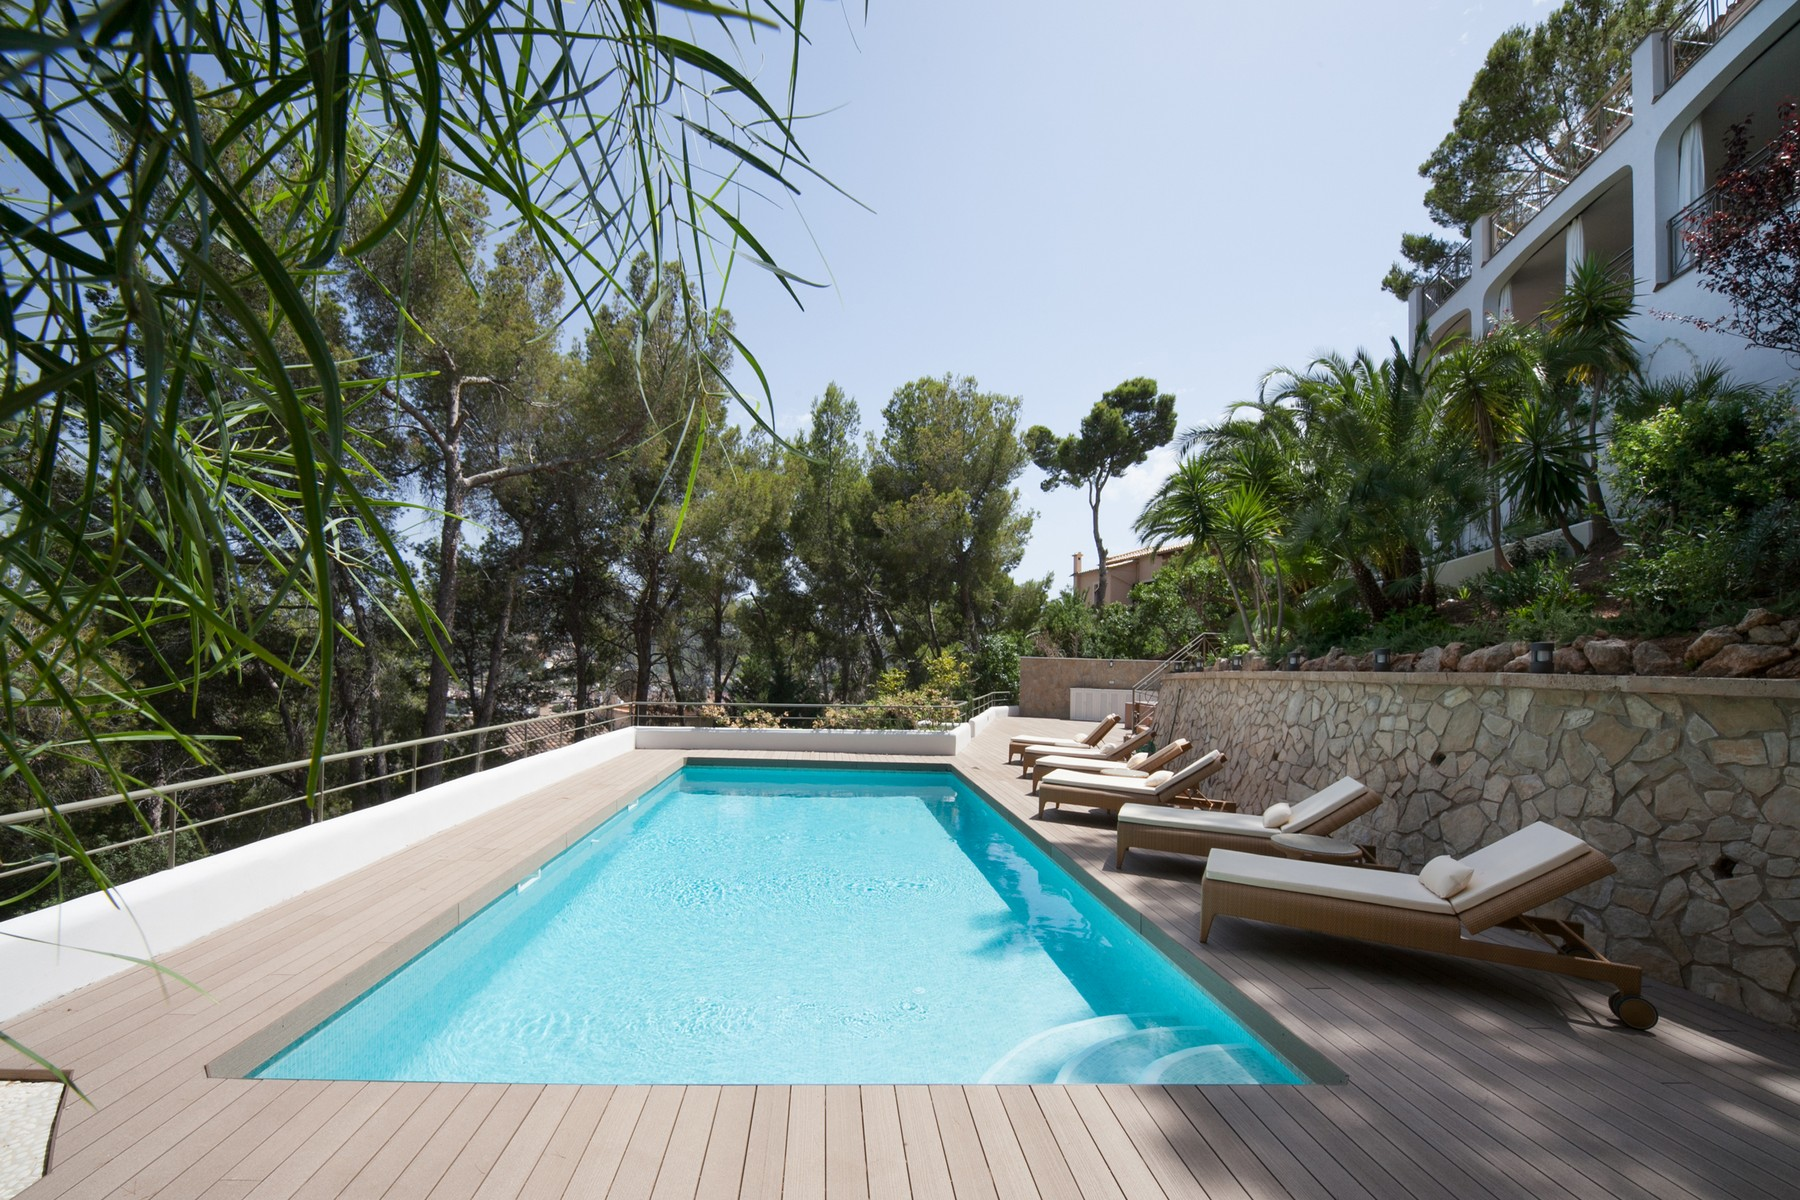 Casa Unifamiliar por un Venta en Villa overlooking the harbour in Port Andratx Port Andratx, Mallorca, 07157 España